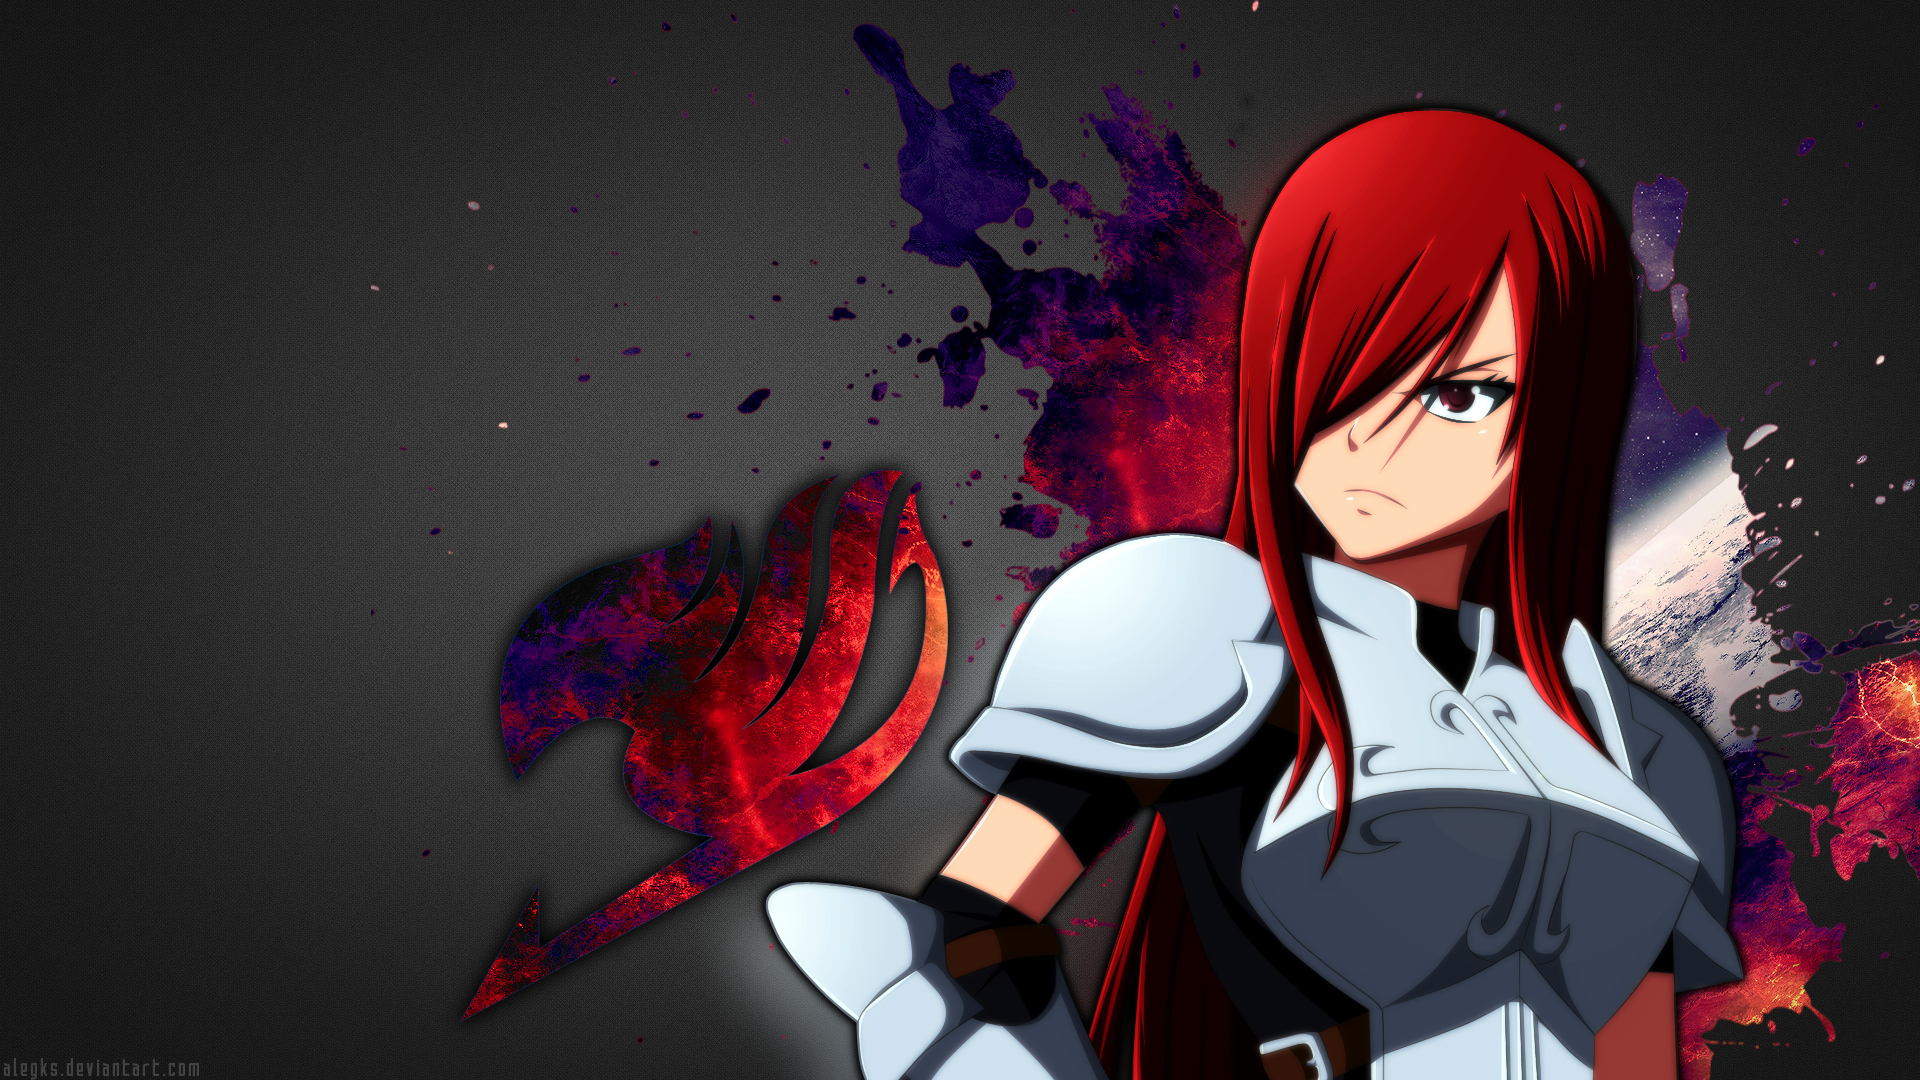 Free Download Erza Scarlet Fairy Tail Wallpaper By Alegks